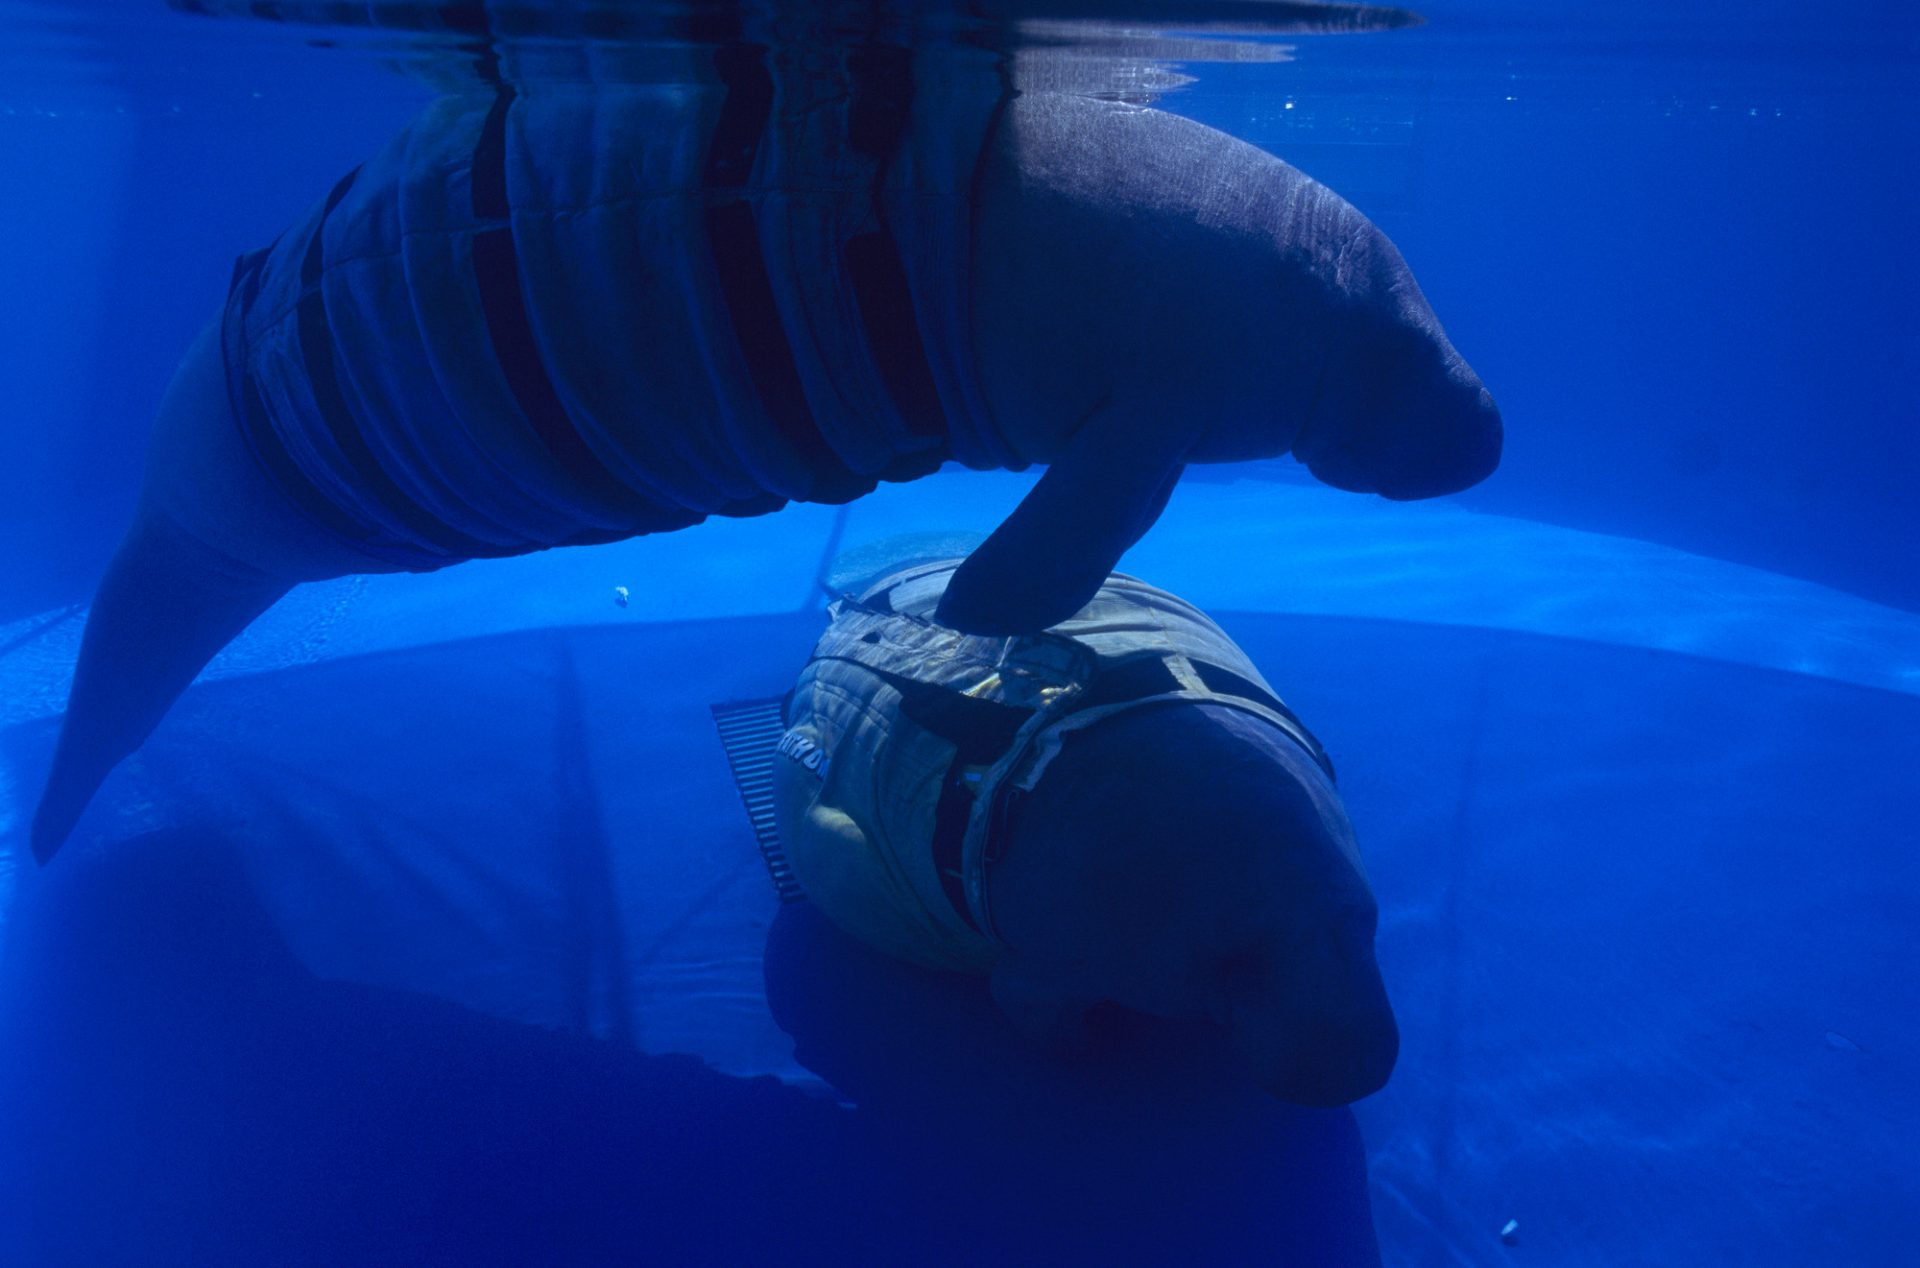 Photo: Hit-and-run victims on Florida's busy waterways, injured manatees maintain vital buoyancy only with the aid of inflatable wet suits at Orlando's Sea World.